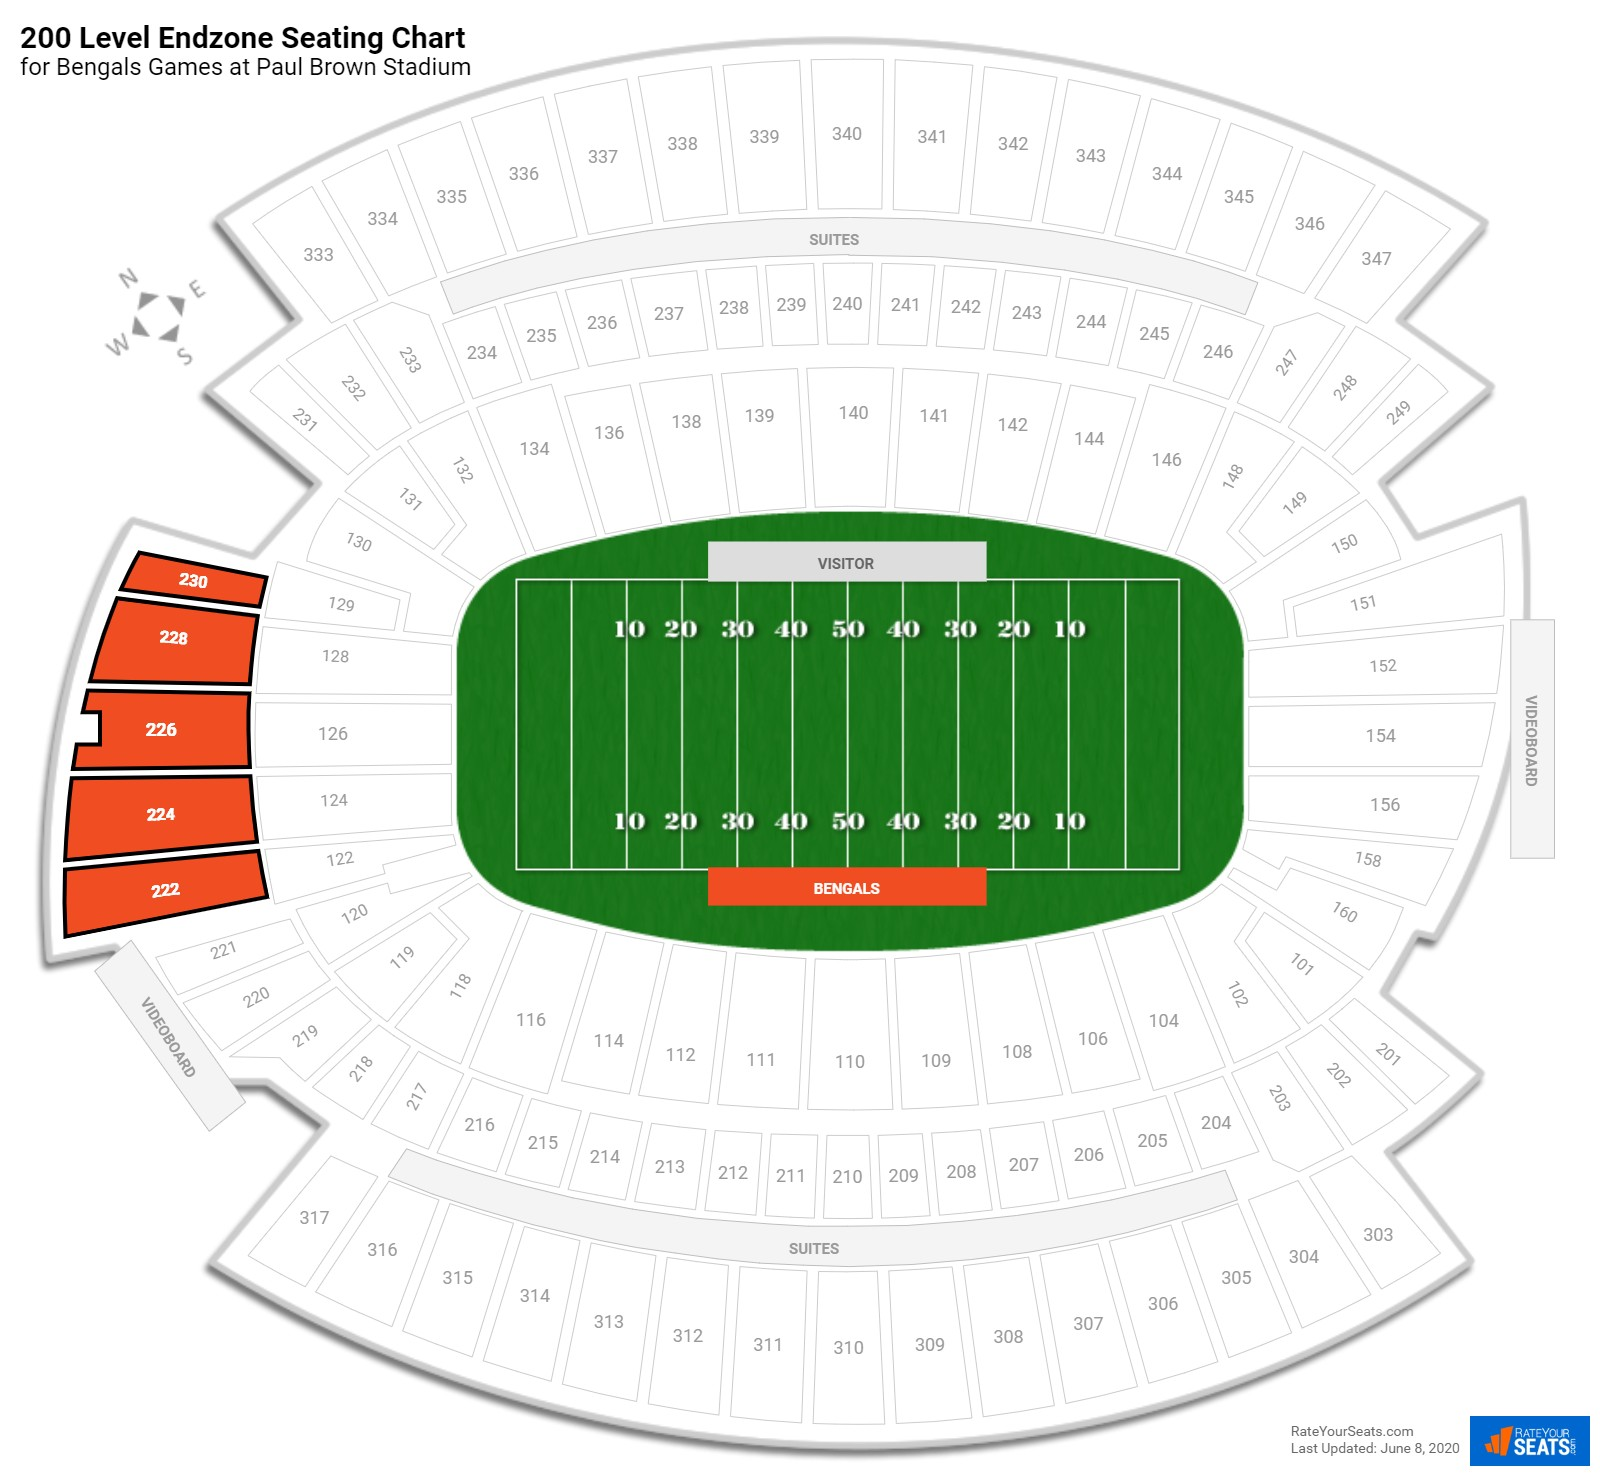 Paul Brown Stadium 200 Level Endzone seating chart